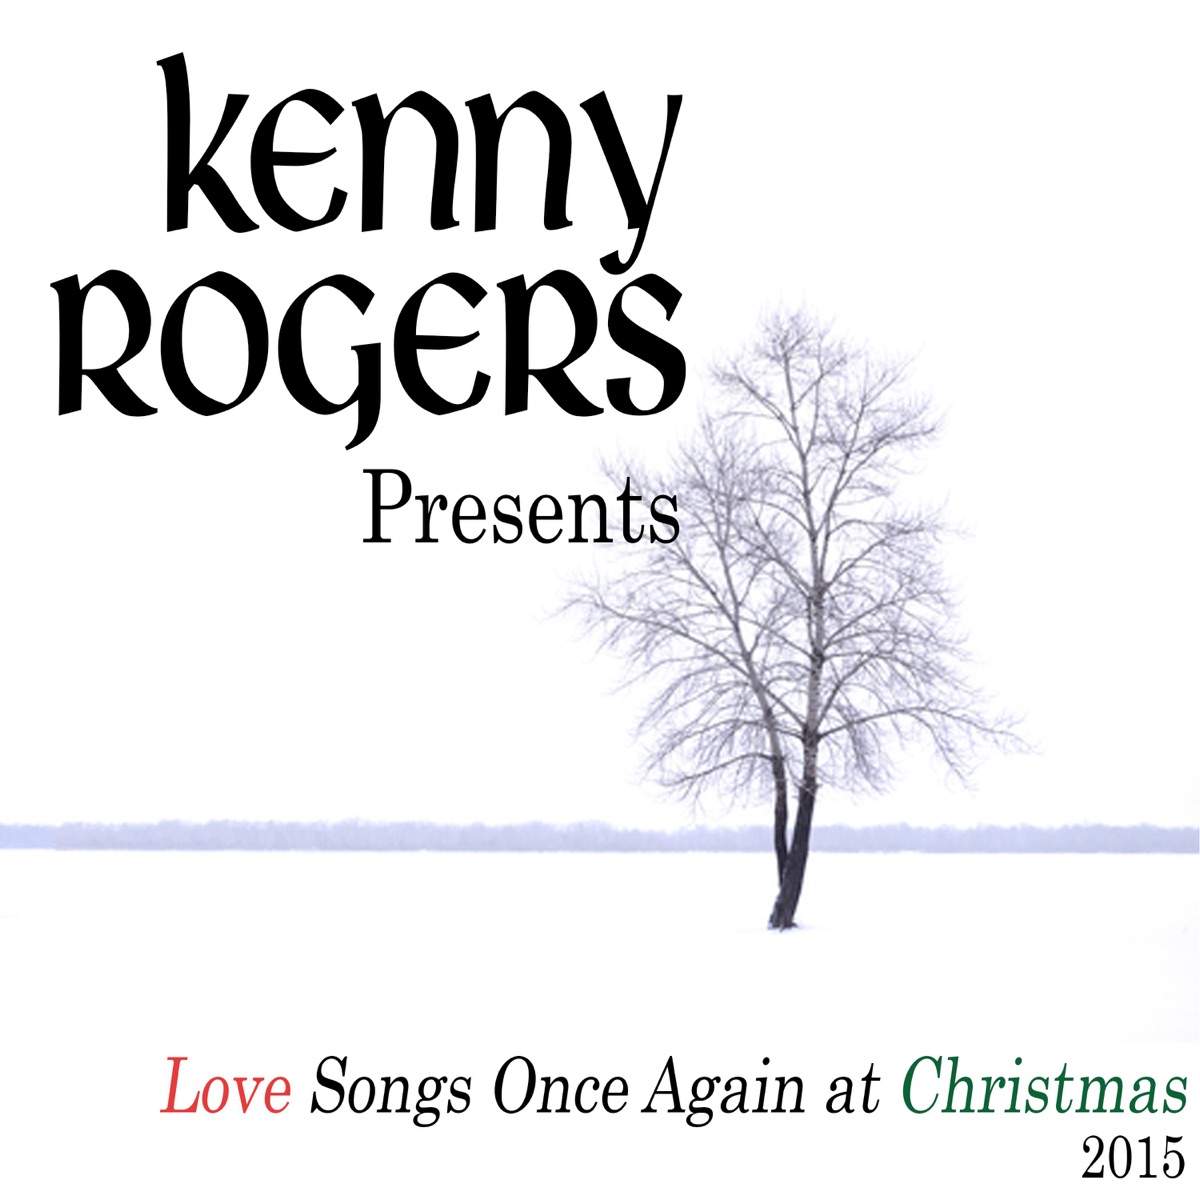 Kenny Rogers Presents Love Songs Once Again at Christmas Album Cover ...